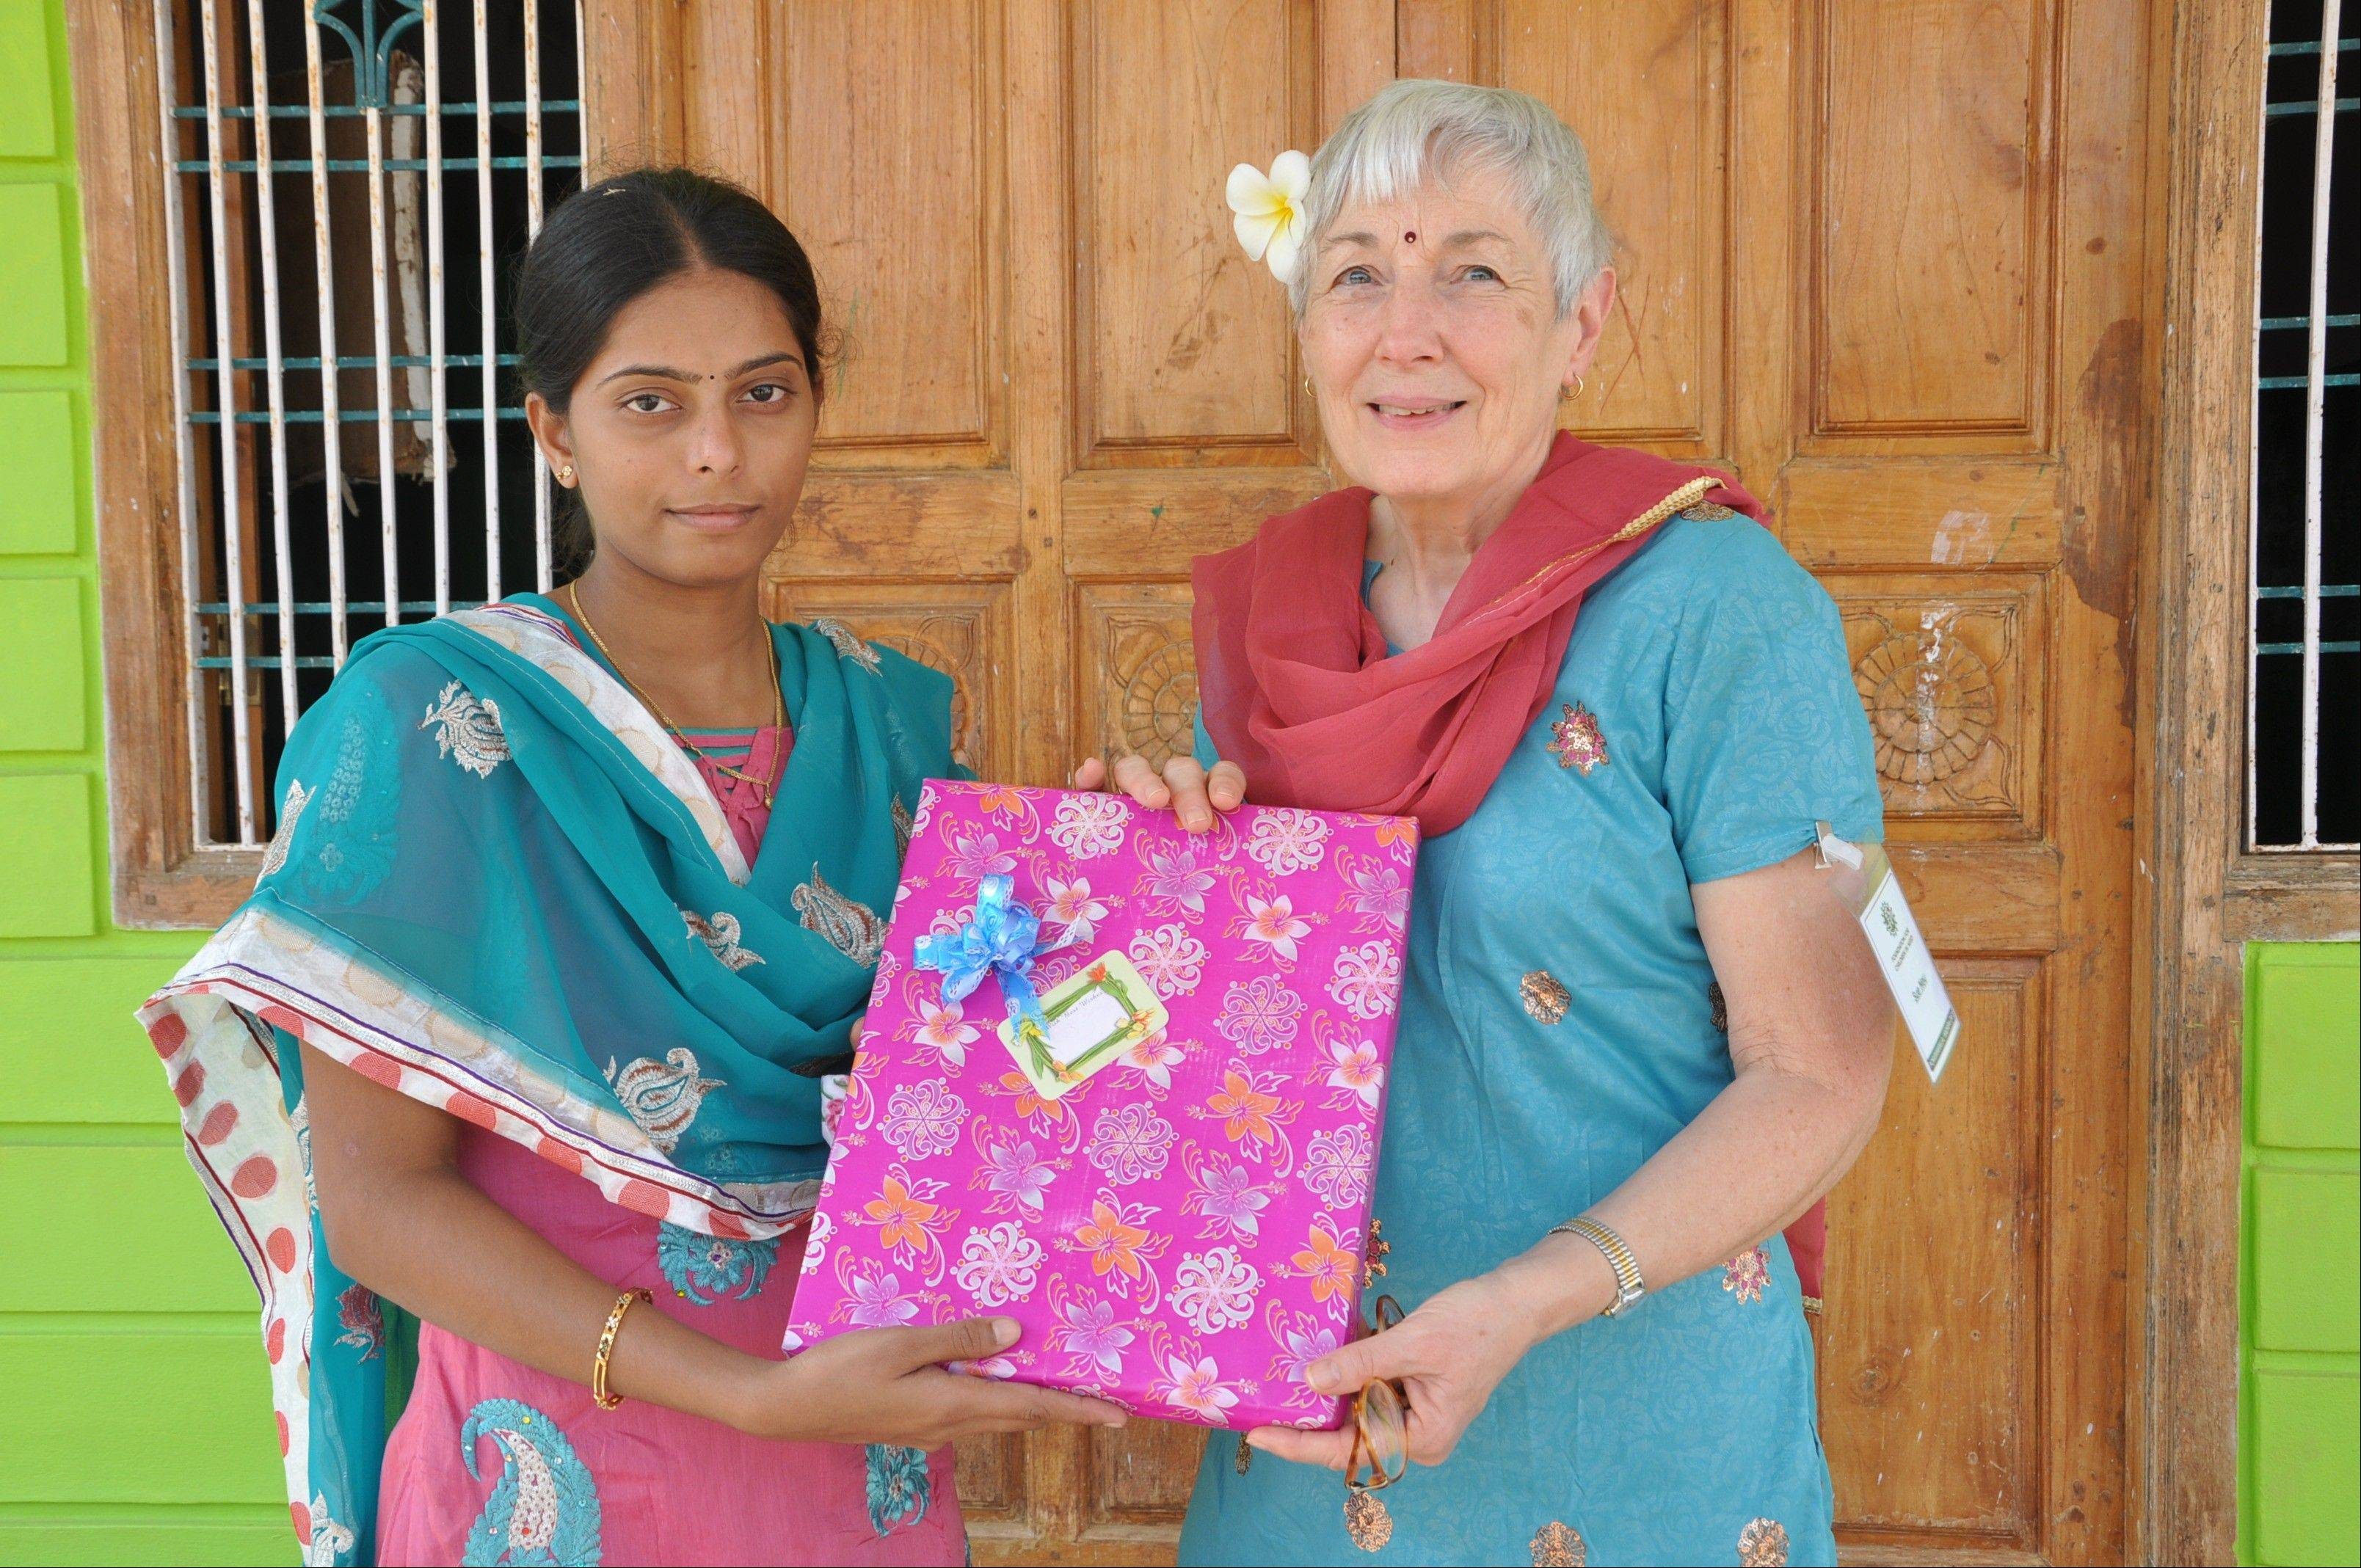 Anitha brings a present to her sponsor Seu Neu of Arlington Heights. She recently graduated to become a registered nurse, like Neu.